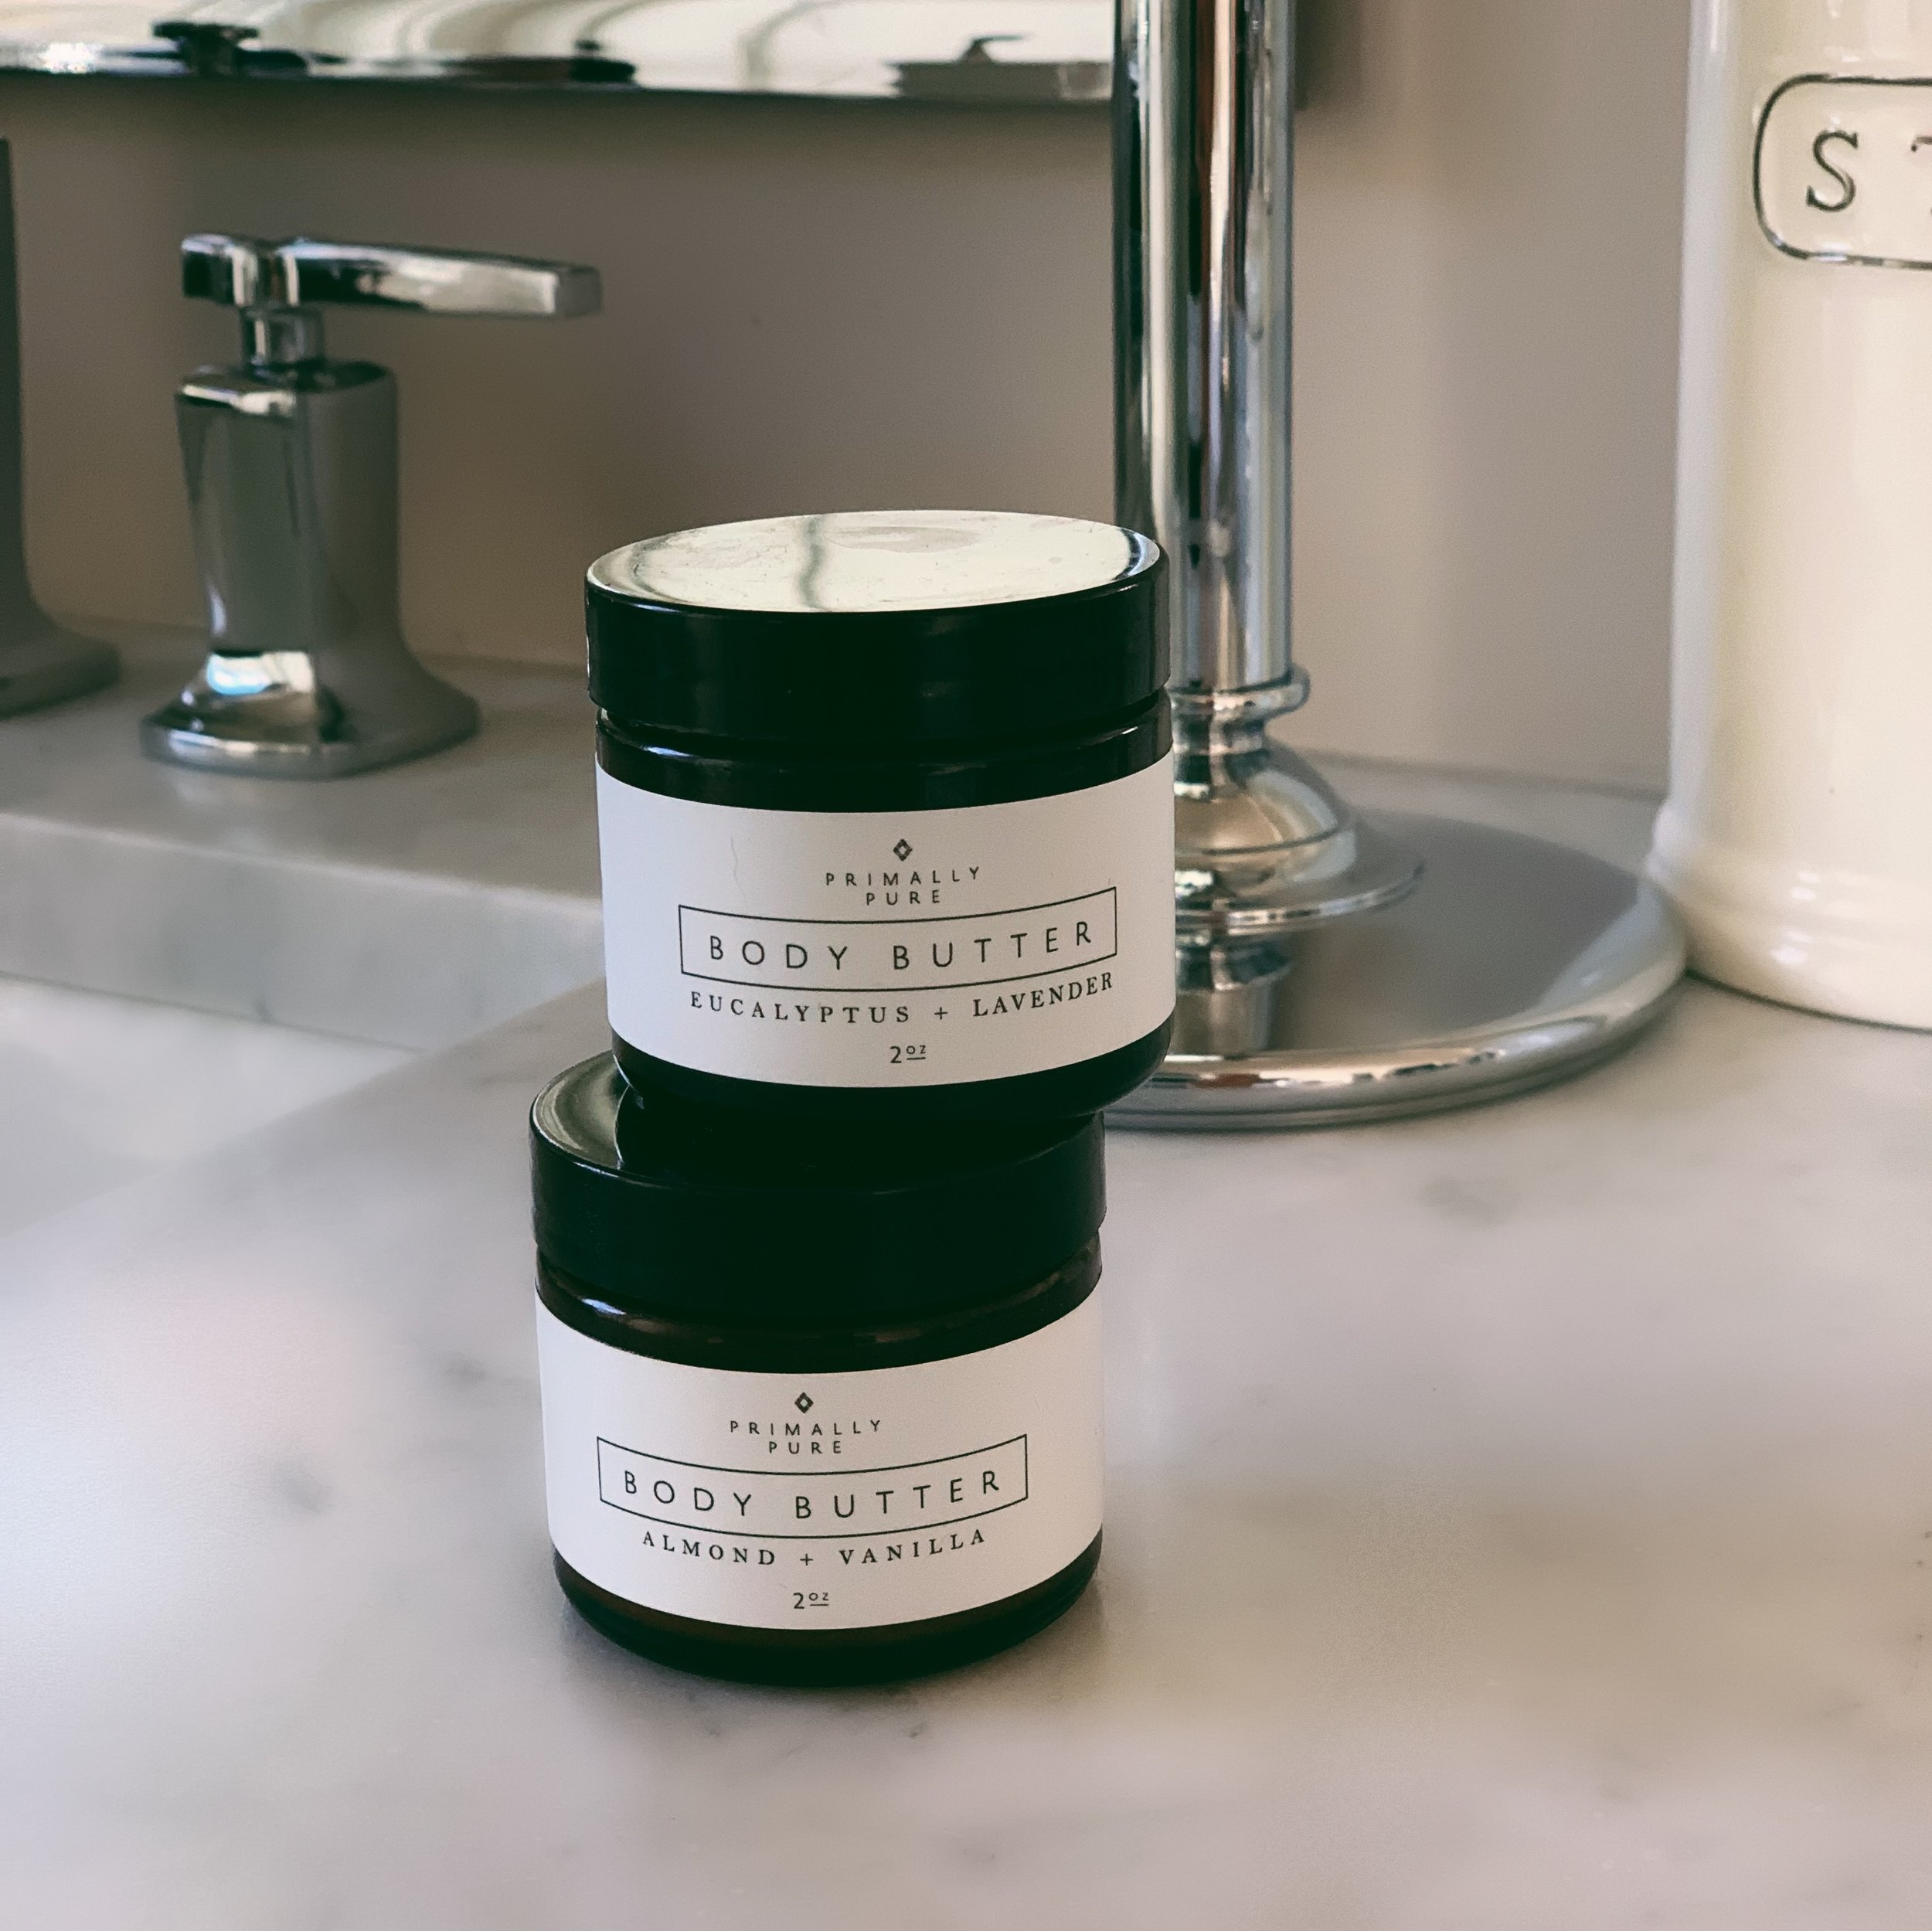 PRIMALLY PURE BODY BUTTERS - One of my favorite non-toxic skincare lines is Primally Pure. They make amazing body butters, which I am ADDICTED TO, a Blue Tansy face cream, which I use when I want to save my Vintner's daughter and it's luxurious AF, and a baby oil, which I legit pour onto my boys because it's so nourishing for their skin. Browse the Primally Pure website and shop. My discount code kalejunkie saves you 10% on your entire purchase! ($18)